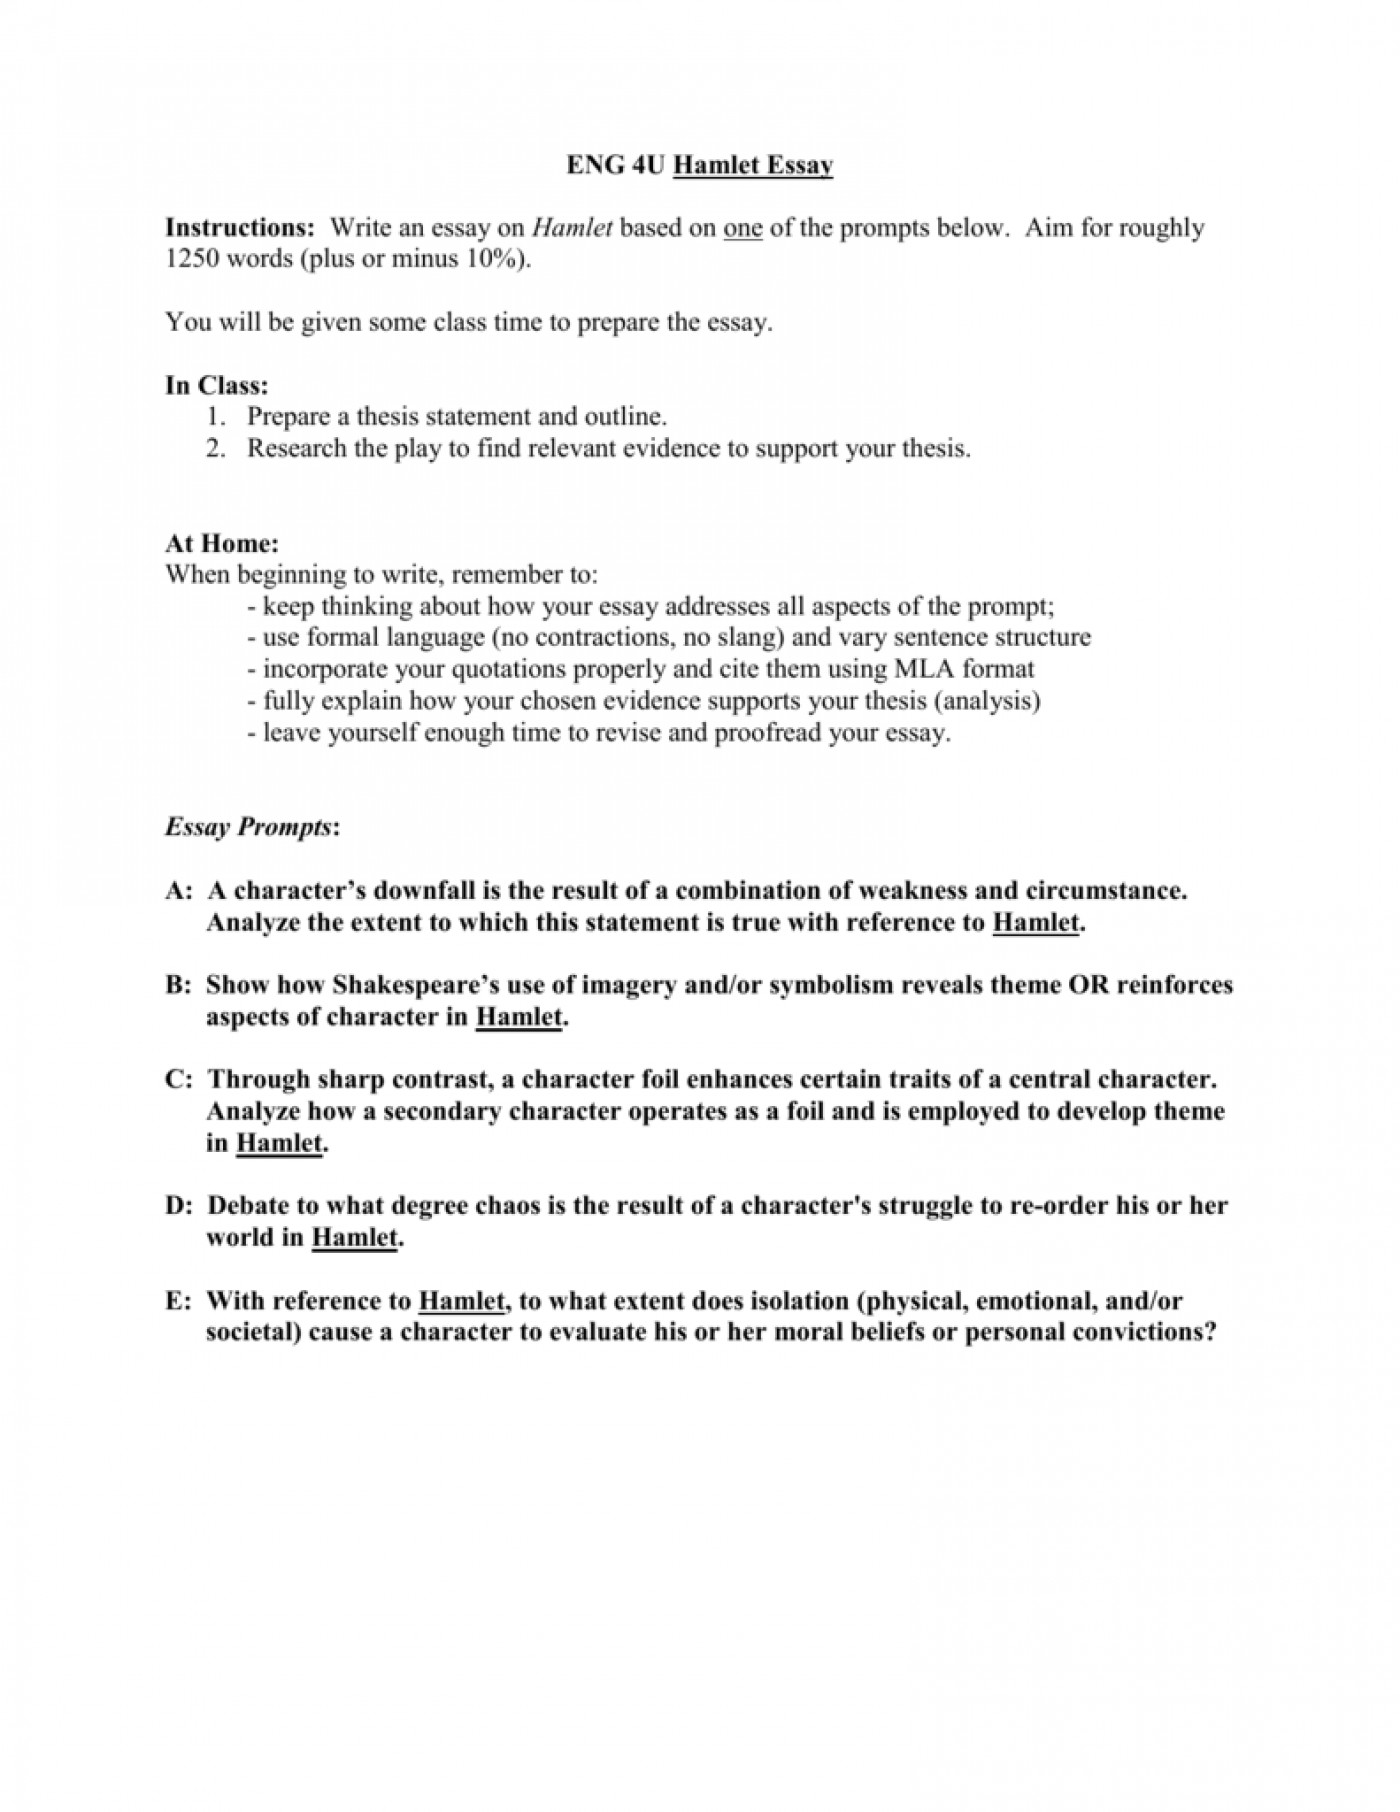 005 Essay Example 008038423 1 University Of Chicago Striking Prompts Illinois Prompt 2011 1400